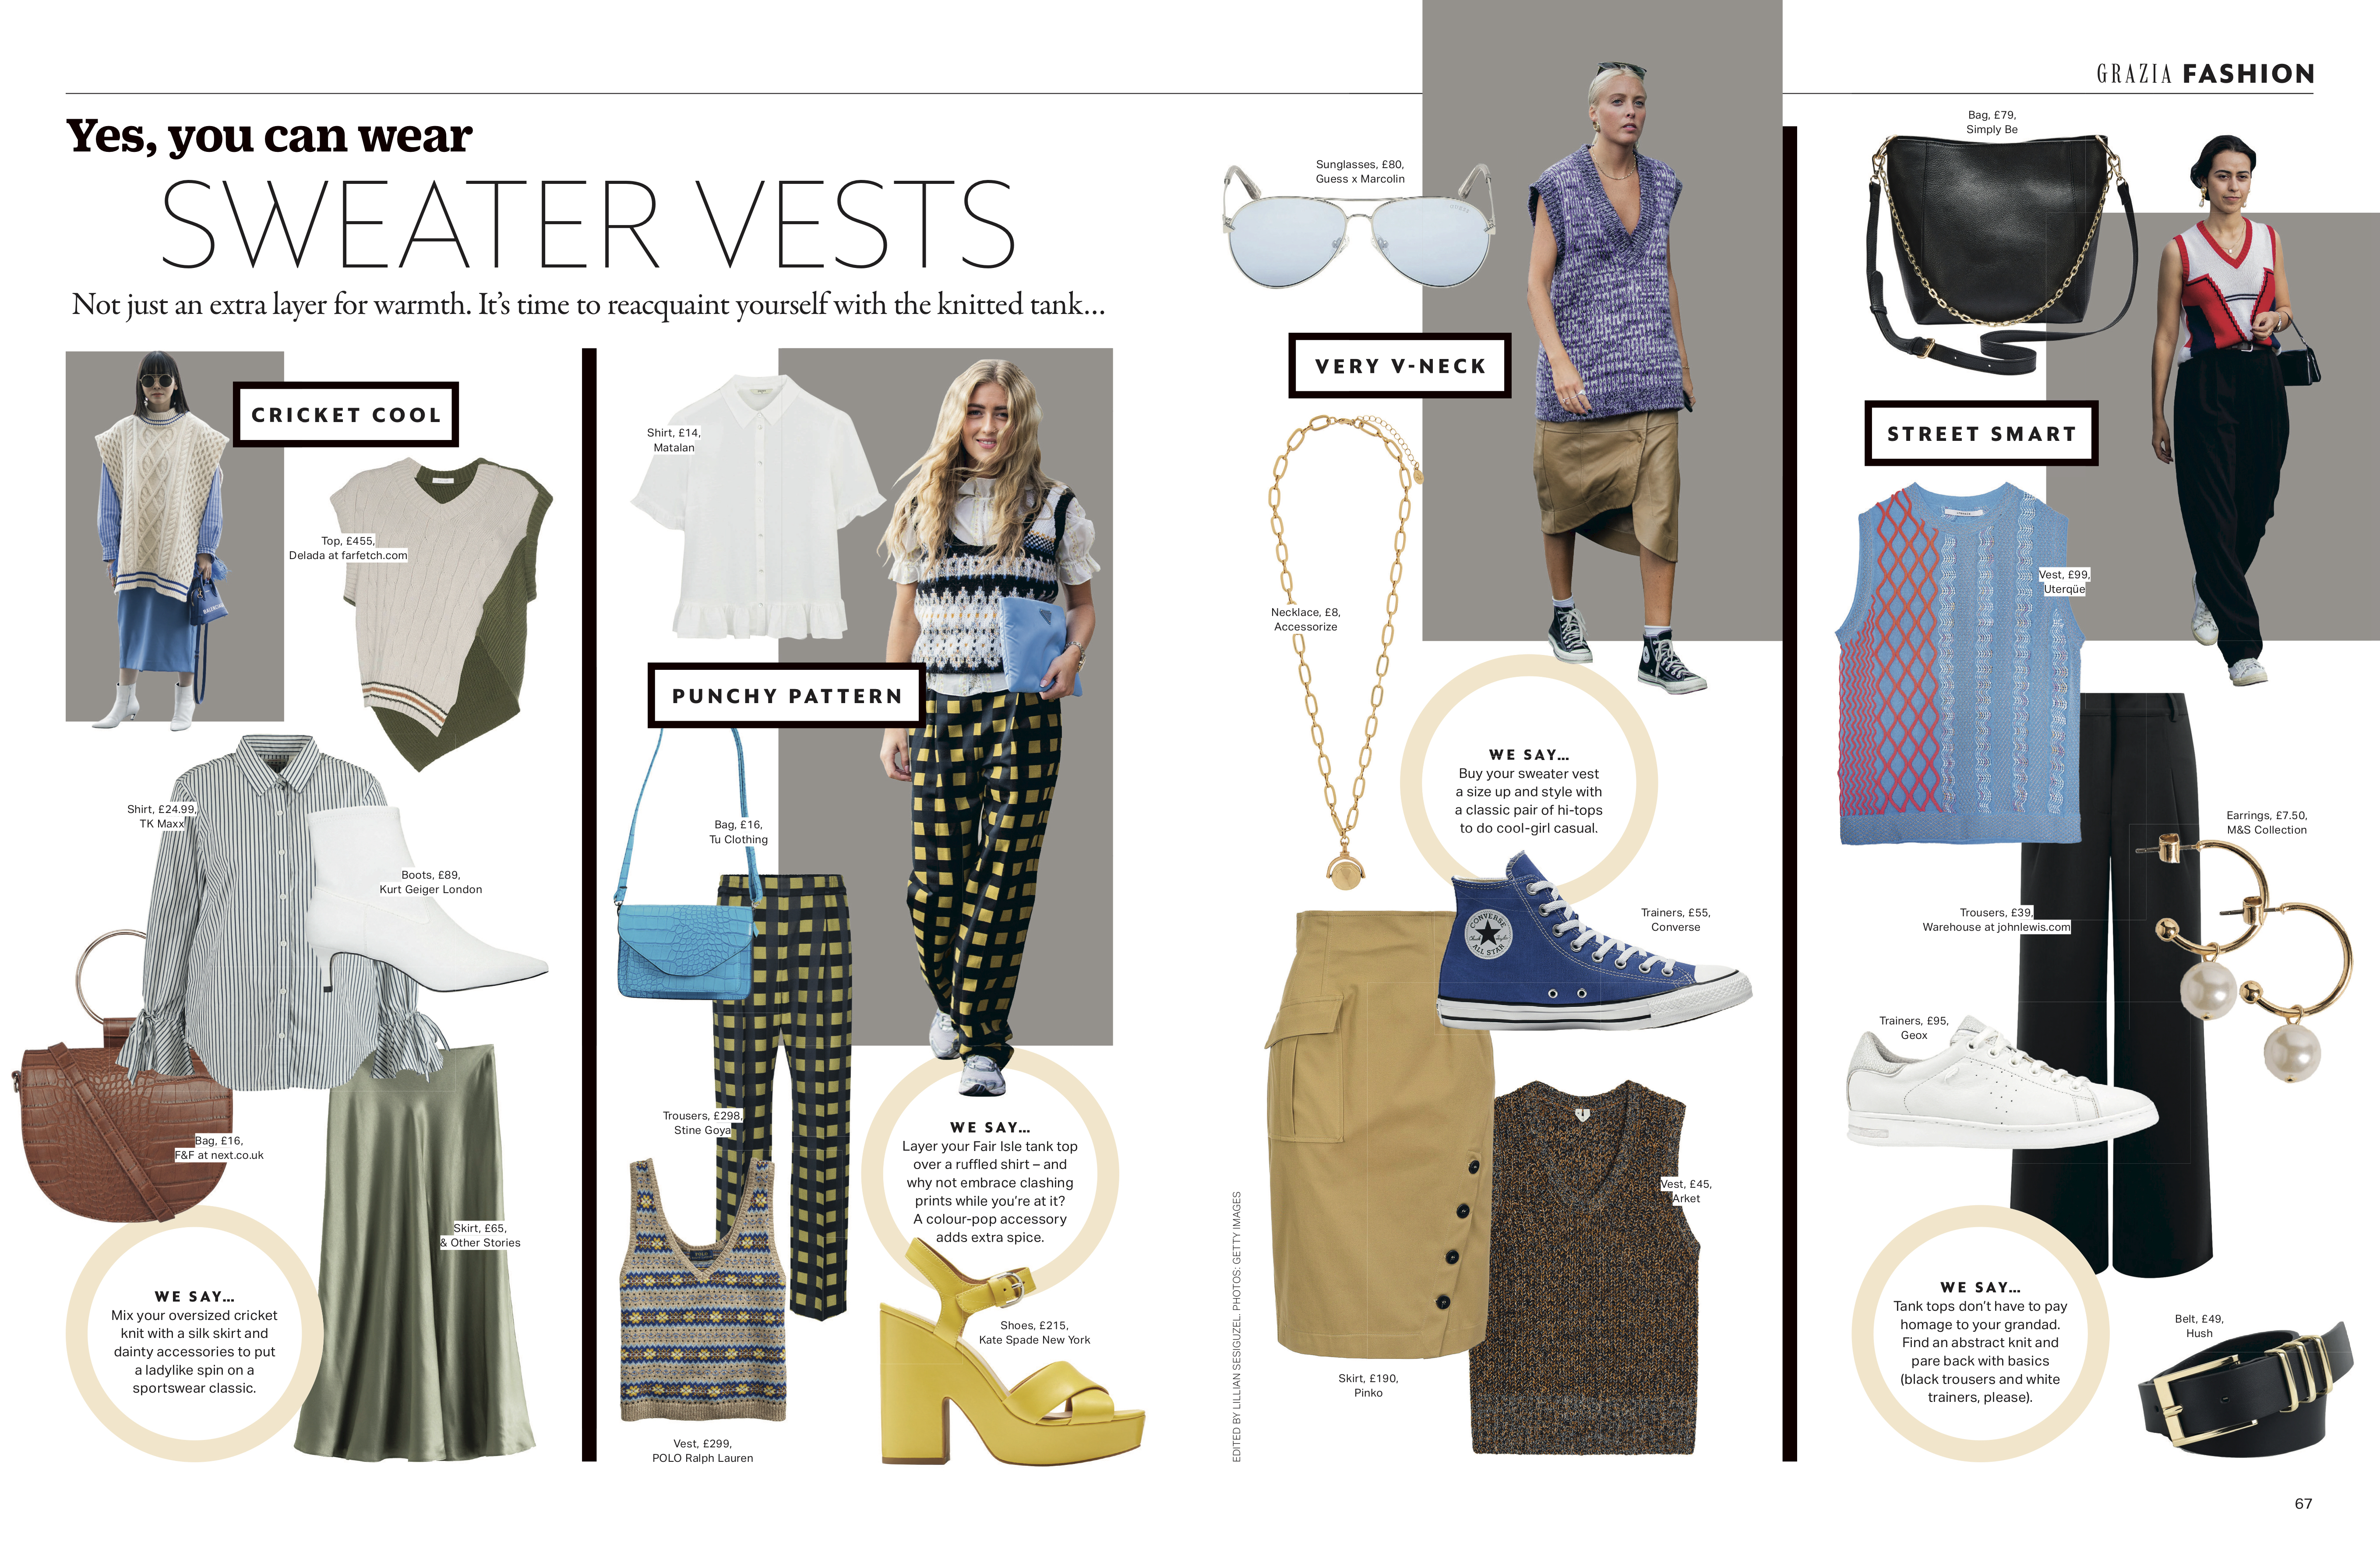 Grazia magazine yes you can wear sweater vests